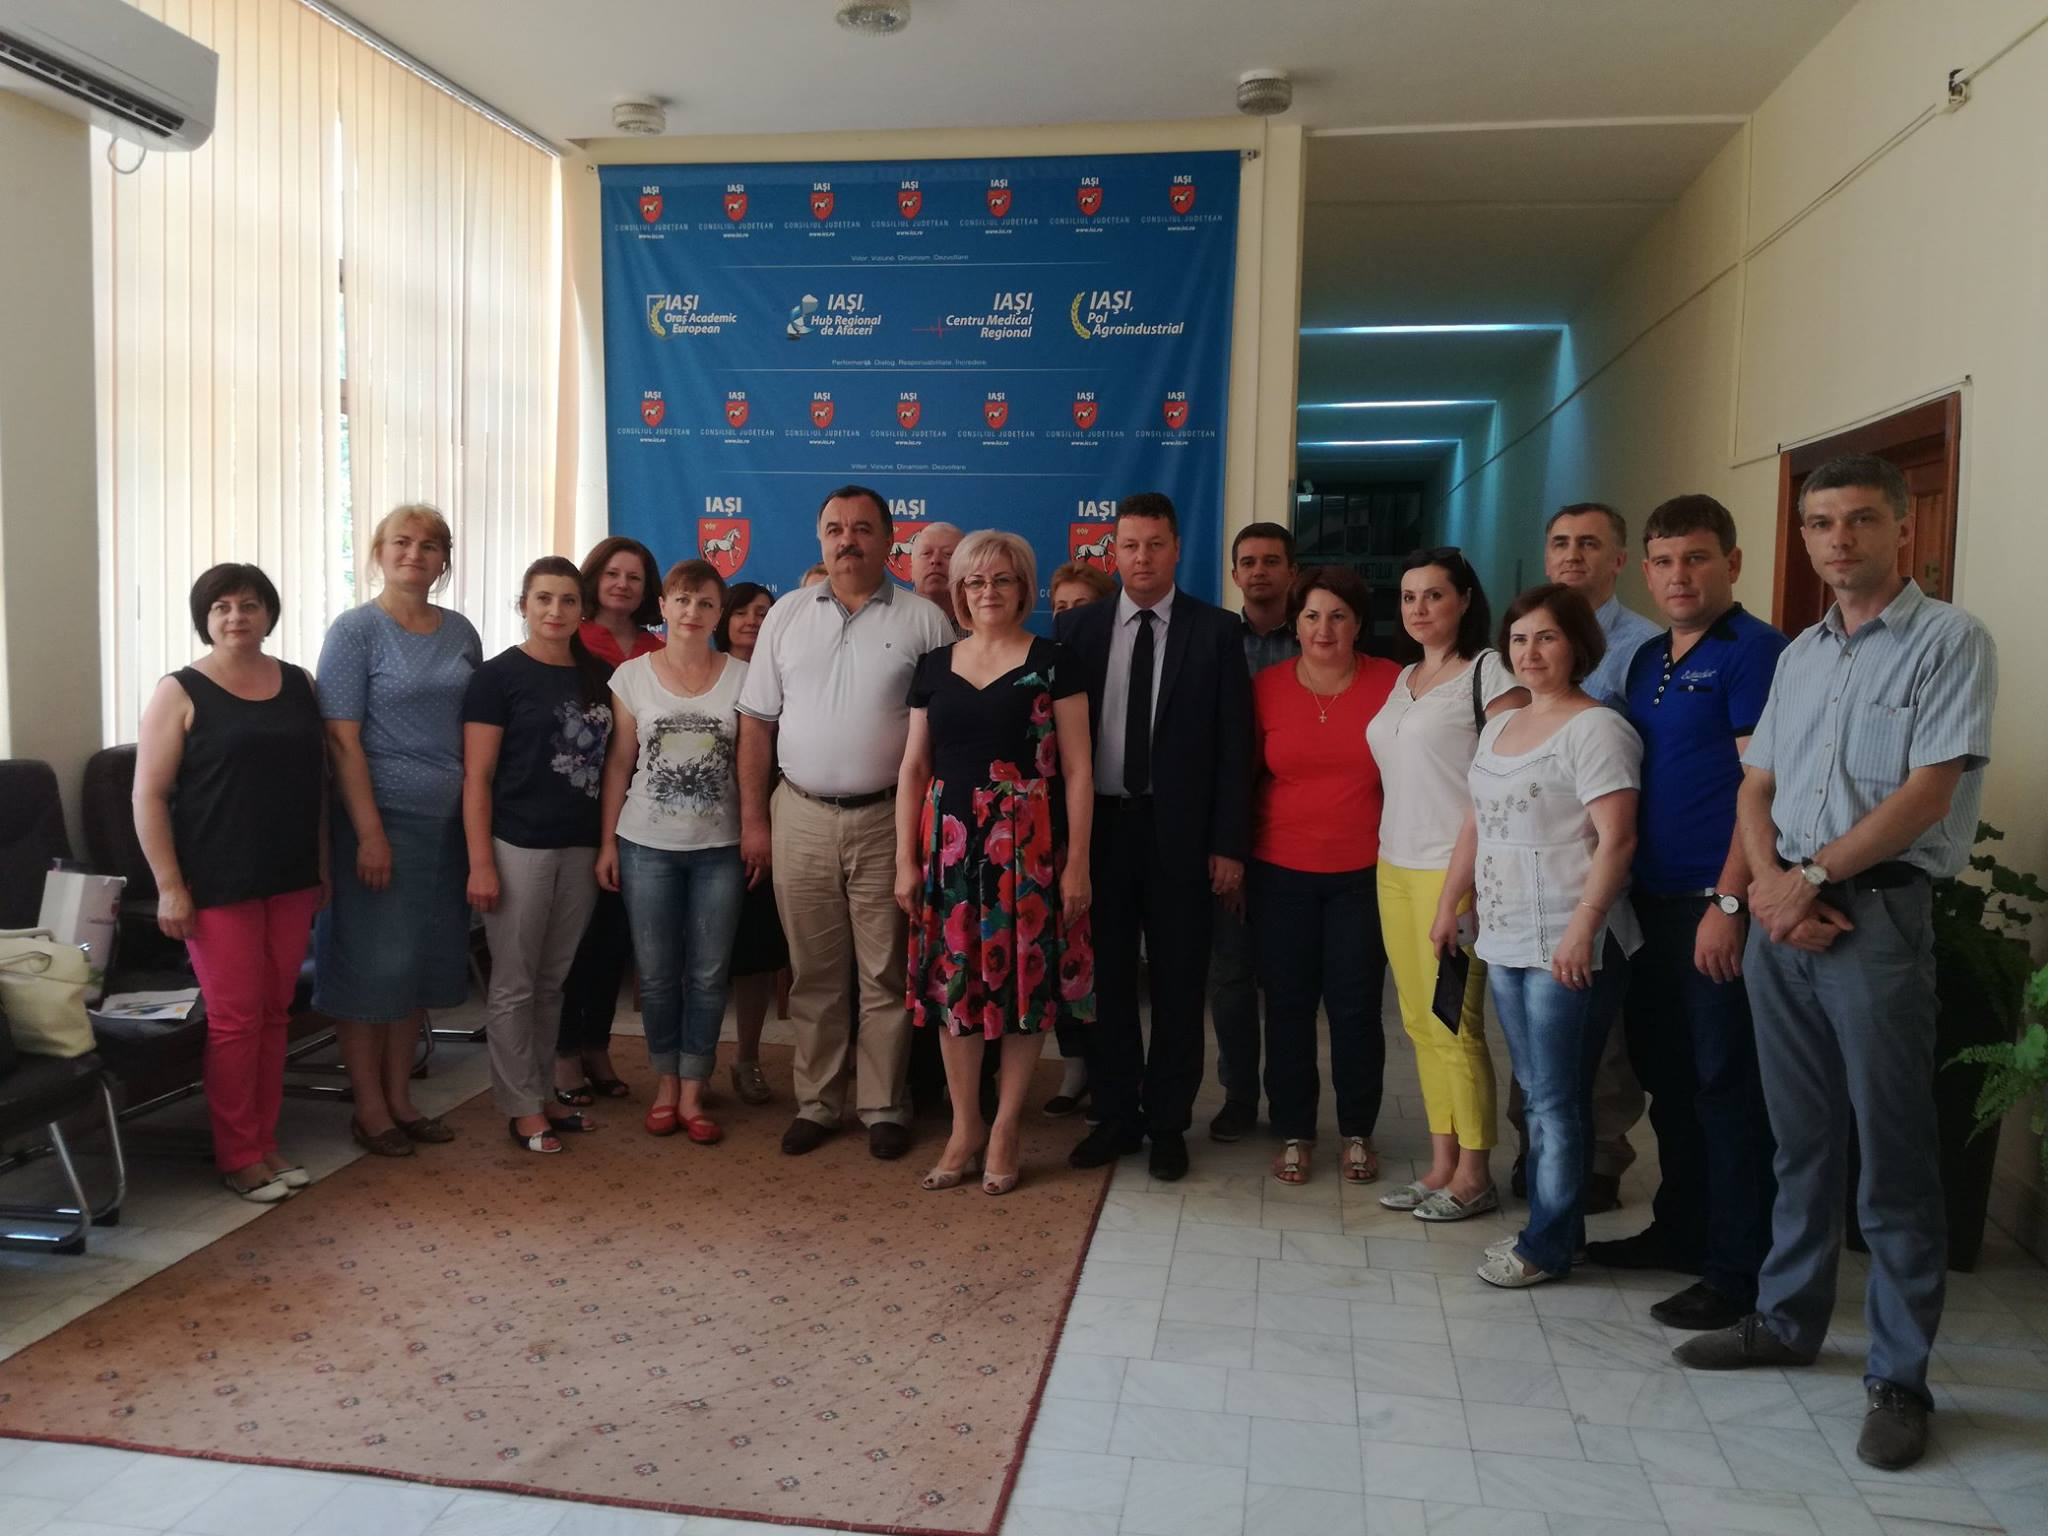 "<a class=""amazingslider-posttitle-link"" href=""http://www.euroregiune.org/en/study-visit-delegation-soroca-district-june-23rd/"" target=""_self"">Study visit of the delegation from Soroca district, June 23rd</a>"